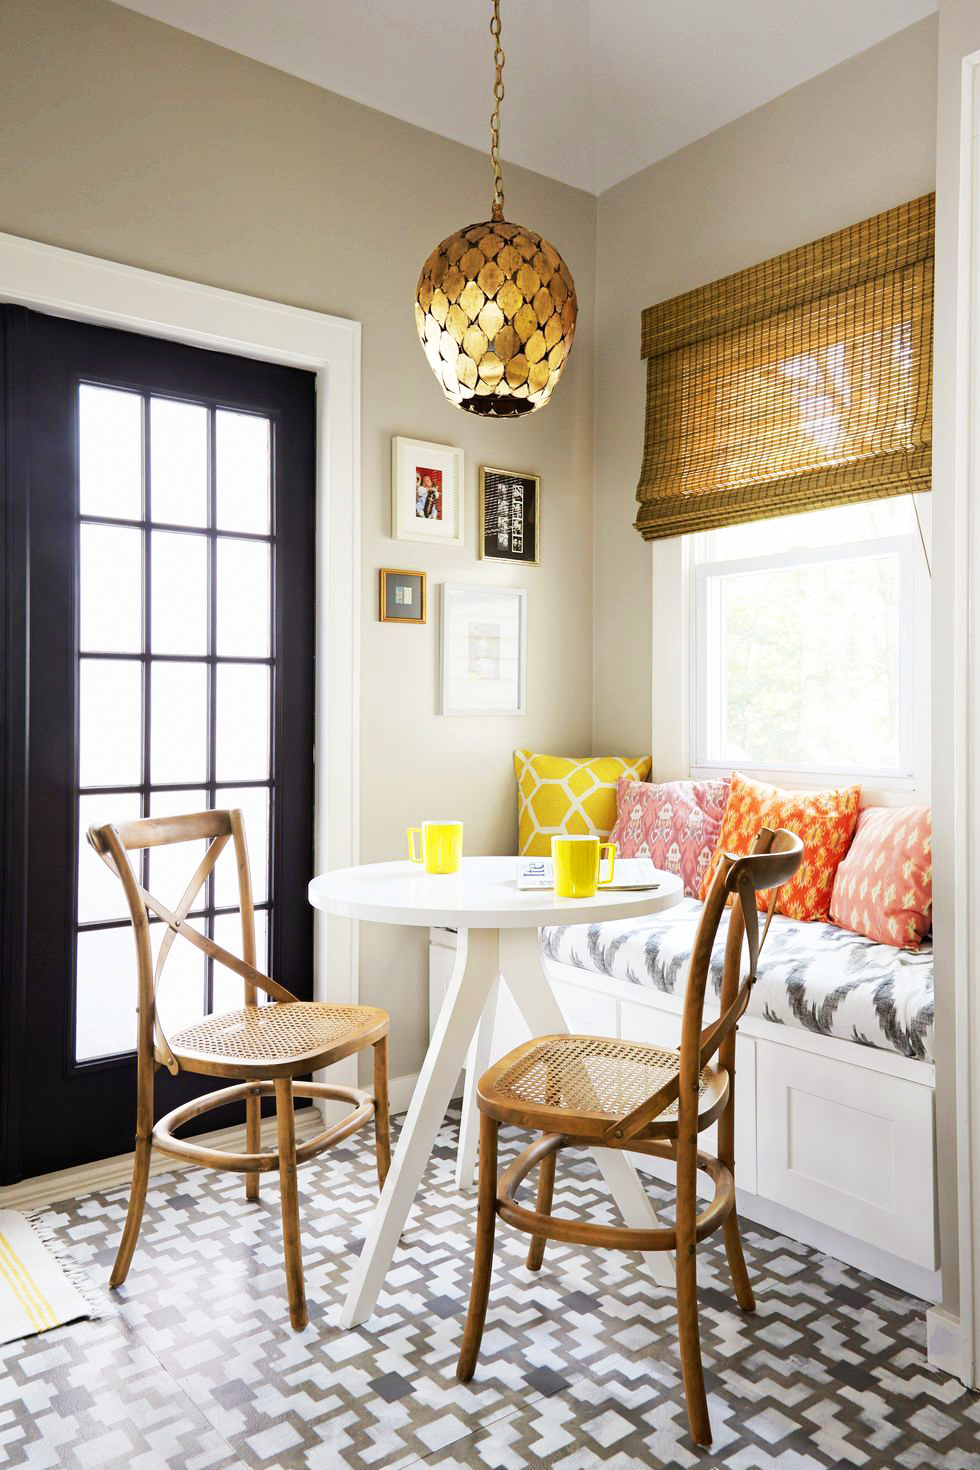 15 Small Dining Room Ideas - How to Decorate Your Small Dining Room